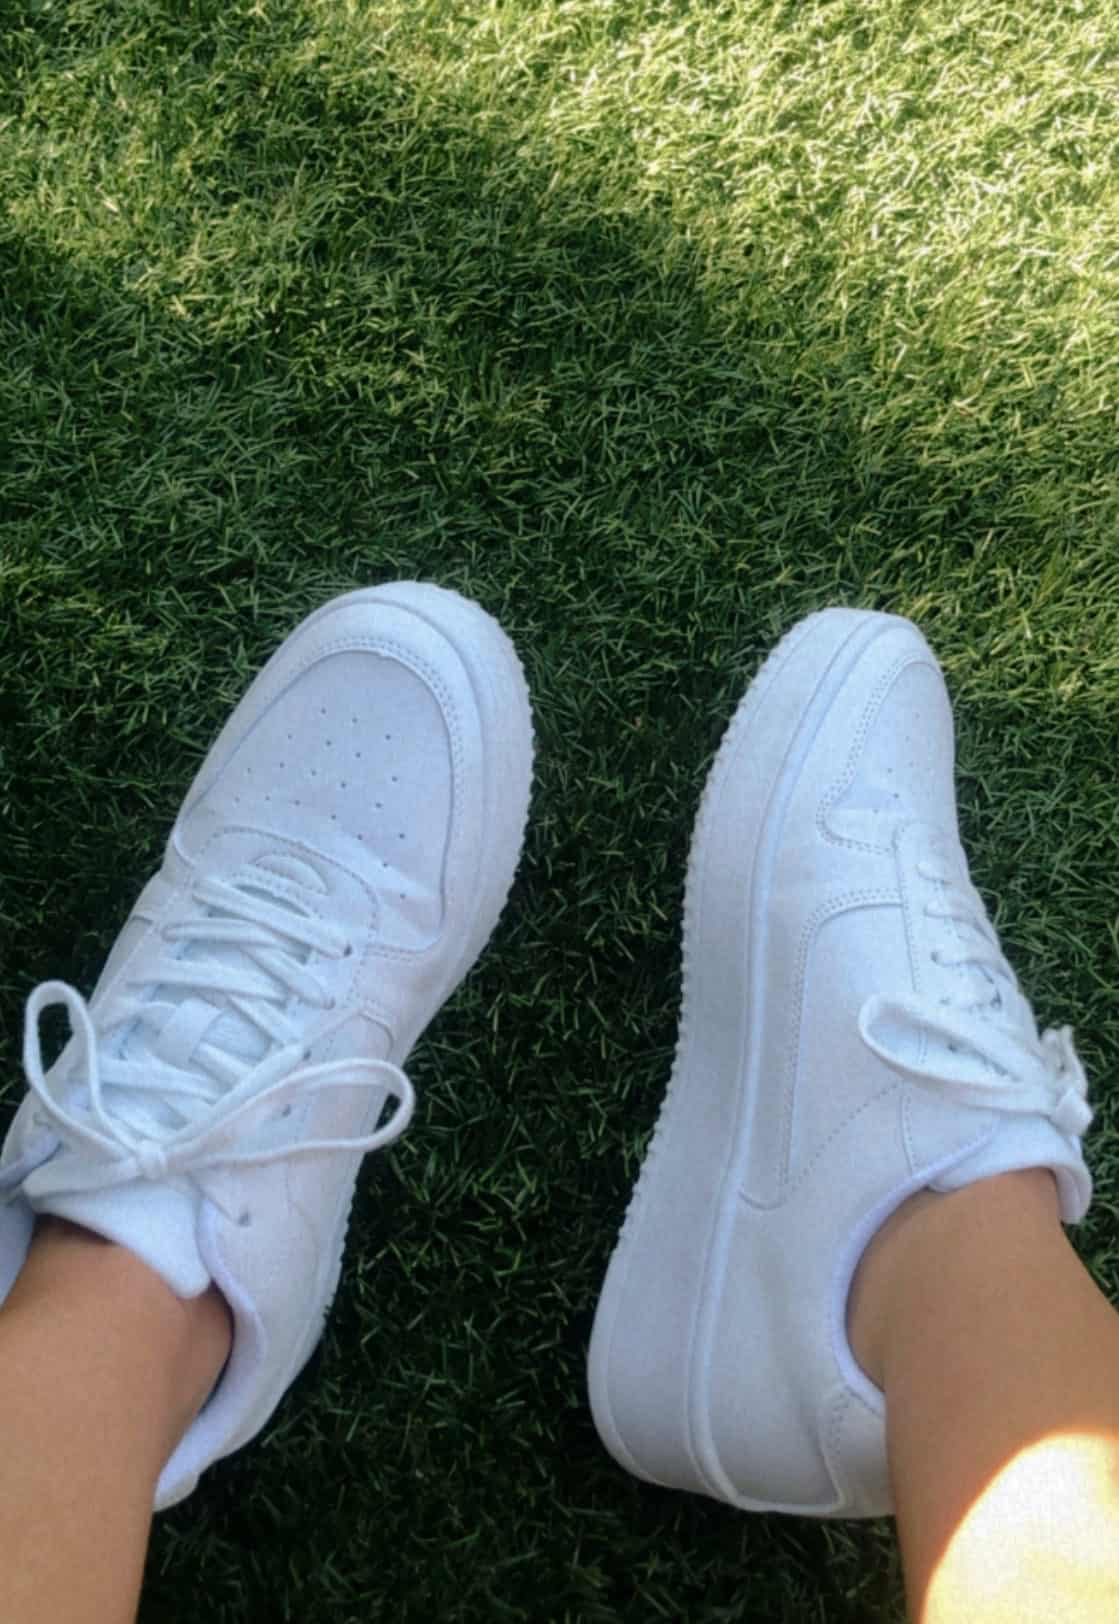 The $14 AirForce 1 Dupe From Walmart - Camila Vilas